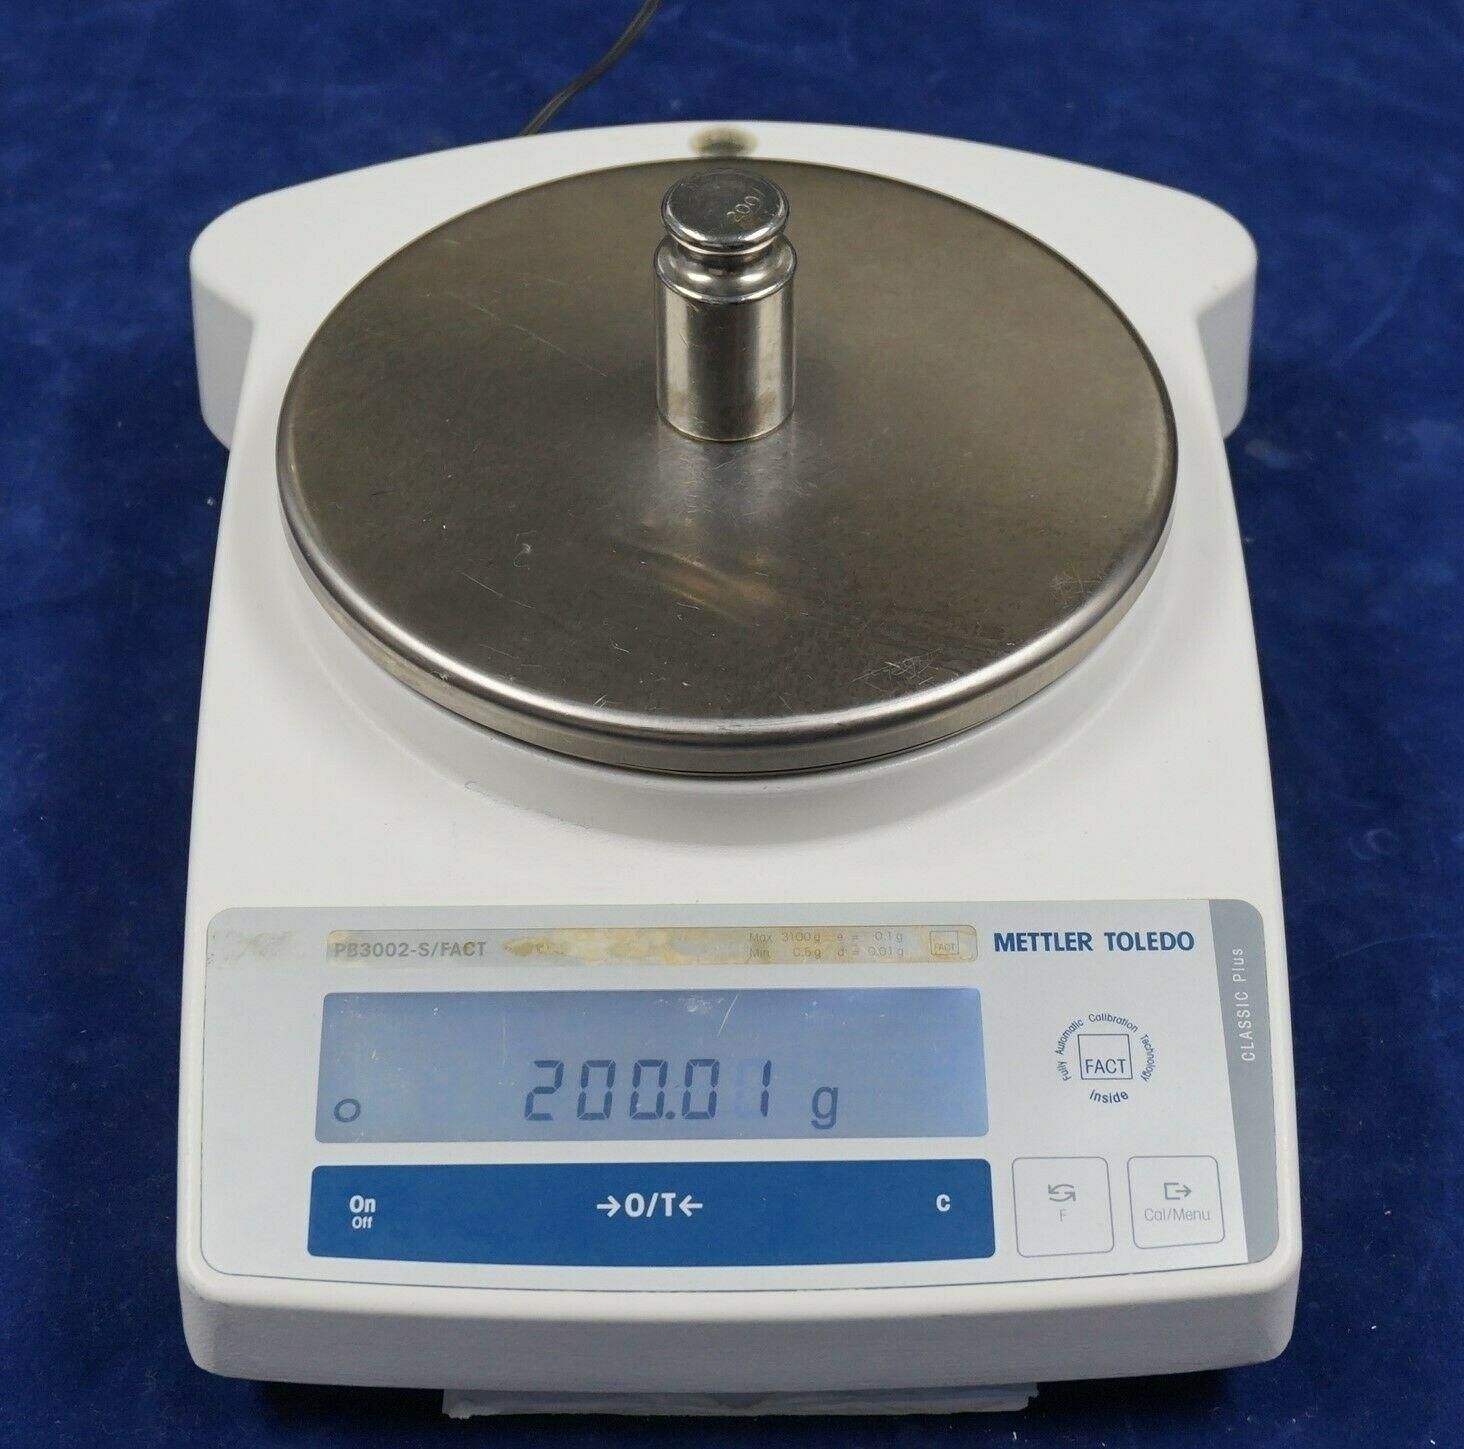 Mettler Toledo PB3002-S Precision Balance  Reconditioned and/or Used